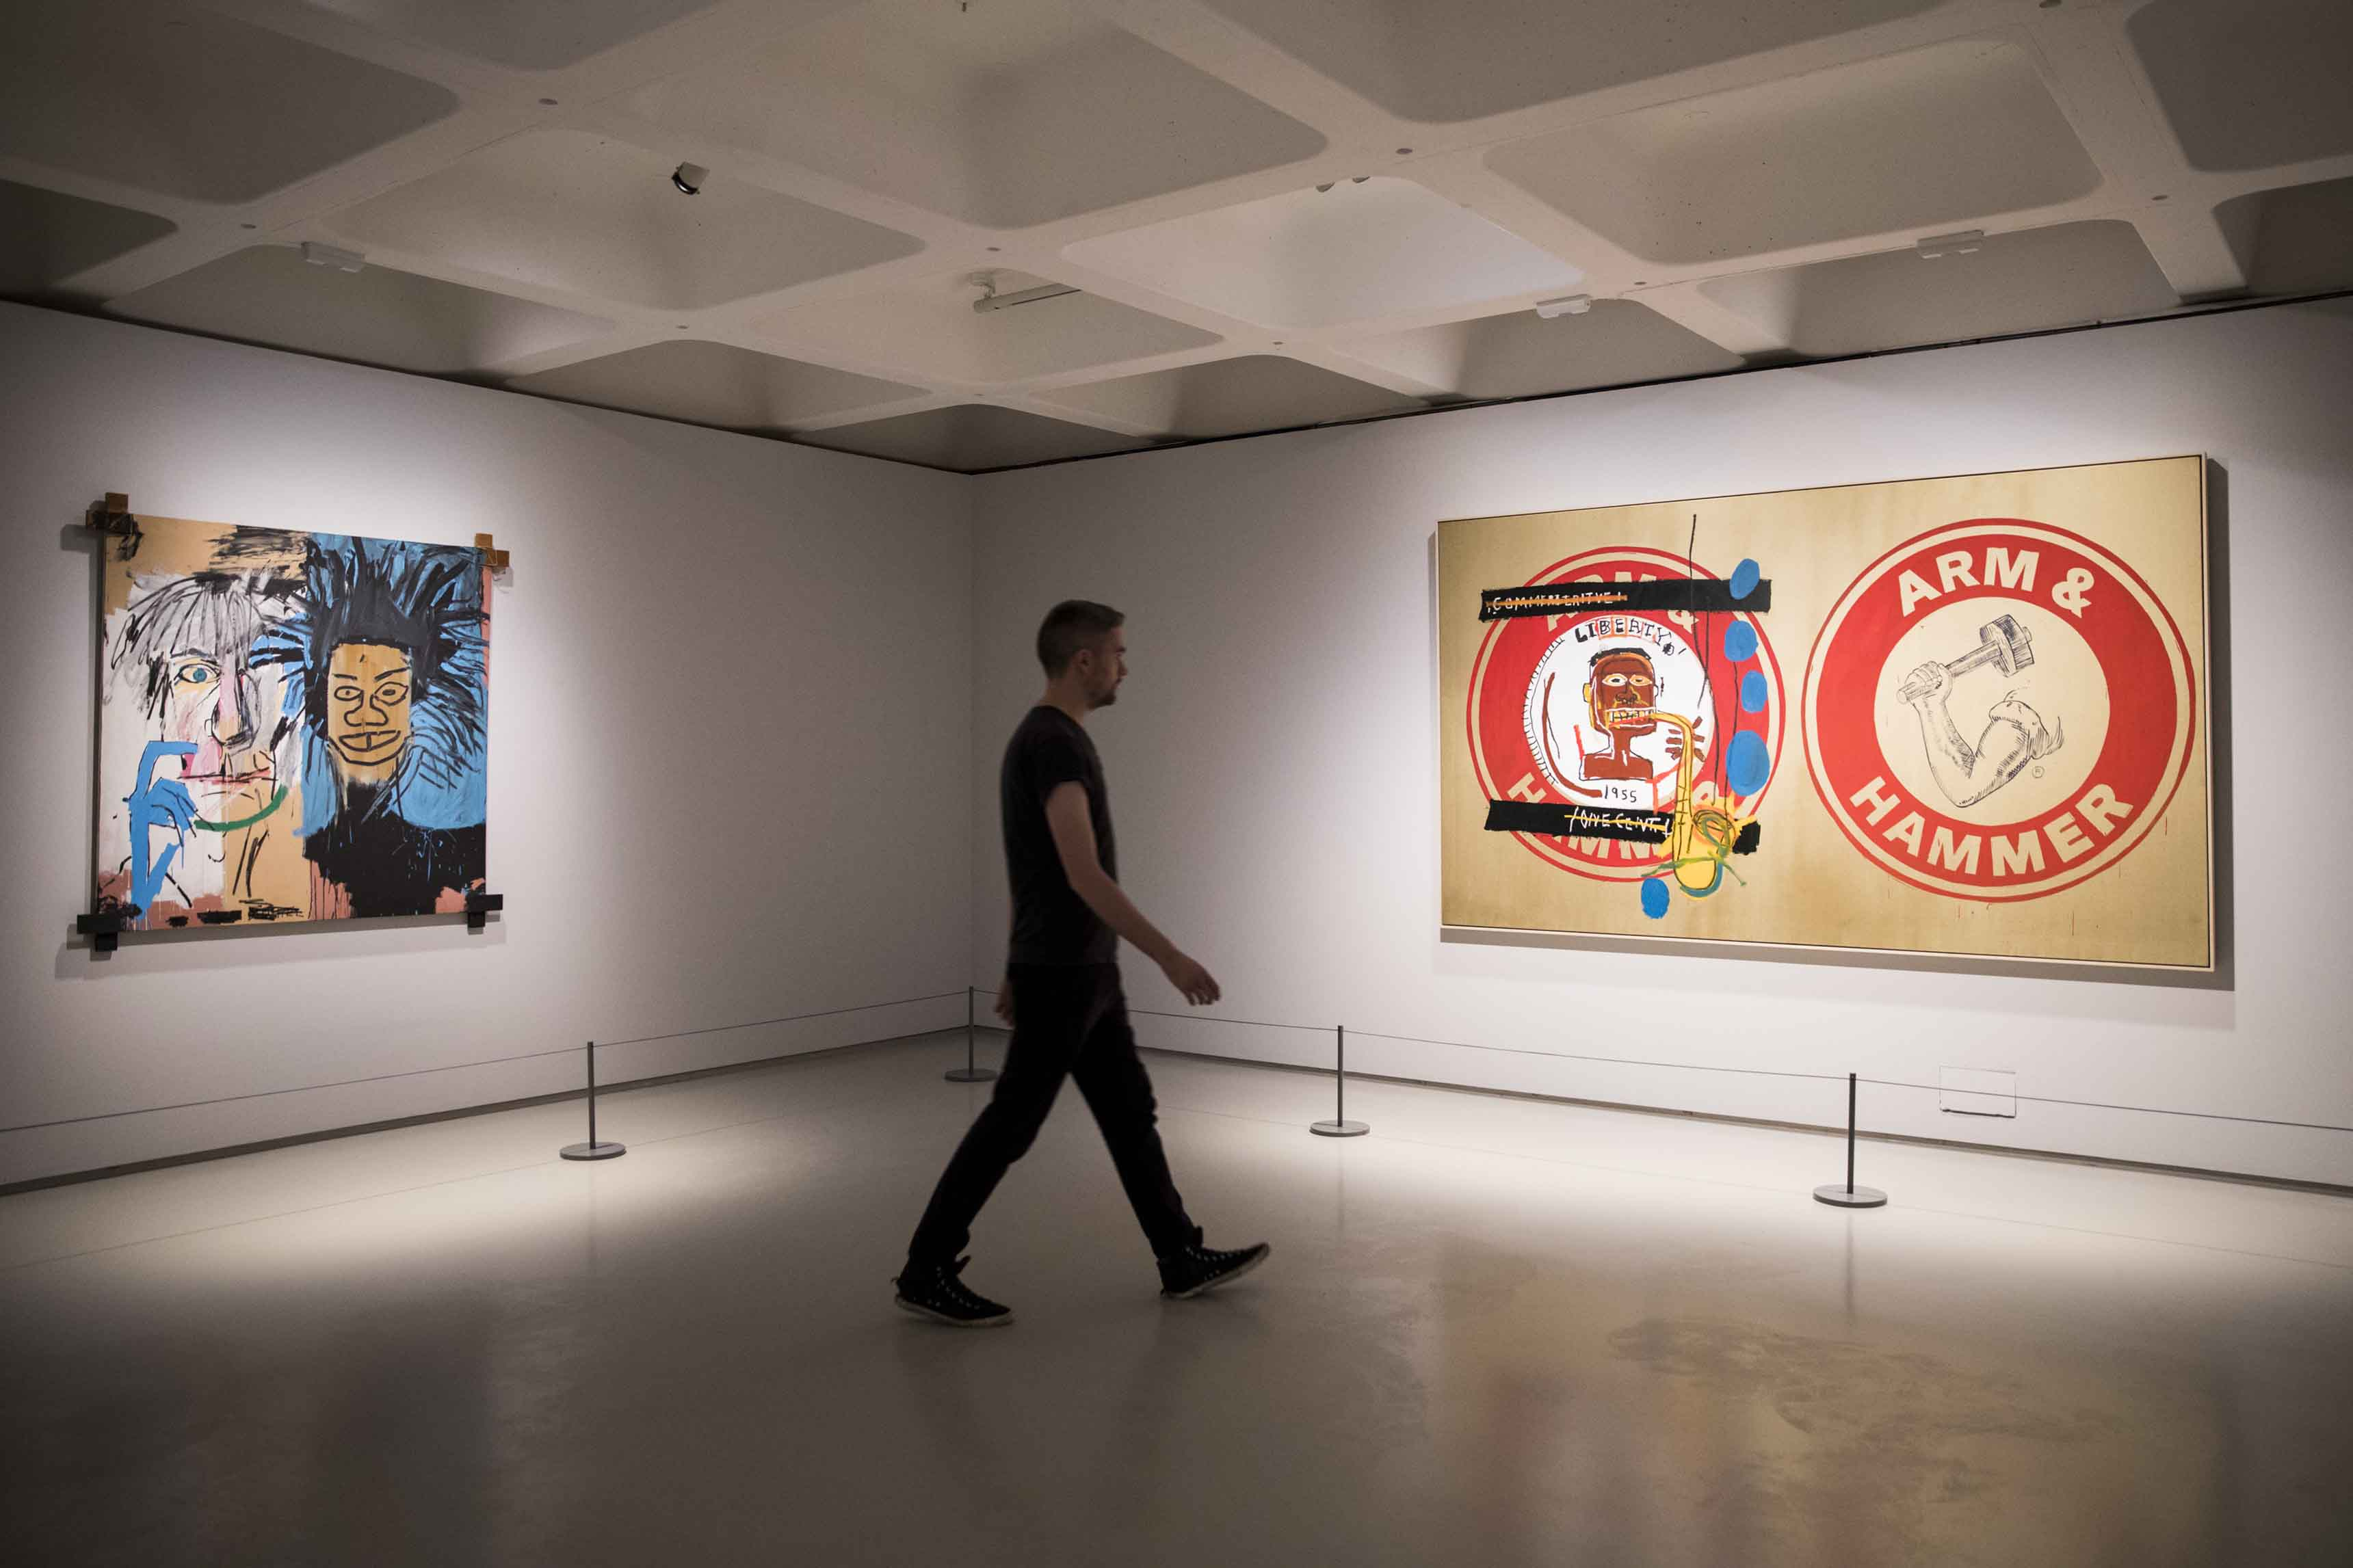 Basquiat: Boom For Real Installation view Barbican Art Gallery 21 September 2017 – 28 January 2018 © Tristan Fewings / Getty Images Artworks (left to right): Jean-Michel Basquiat Dos Cabezas, 1982 Private collection, © The Estate of Jean-Michel Basquiat. Licensed by Artestar, New York. Jean-Michel Basquiat and Andy Warhol Arm and Hammer II, 1984 Acrylic on canvas Guarded by Bischofberger, Männedorf-Zurich, Switzerland © The Estate of Jean-Michel Basquiat. Licensed by Artestar, New York. Courtesy Galerie Bruno Bischofberger, Männedorf-Zurich, Switzerland